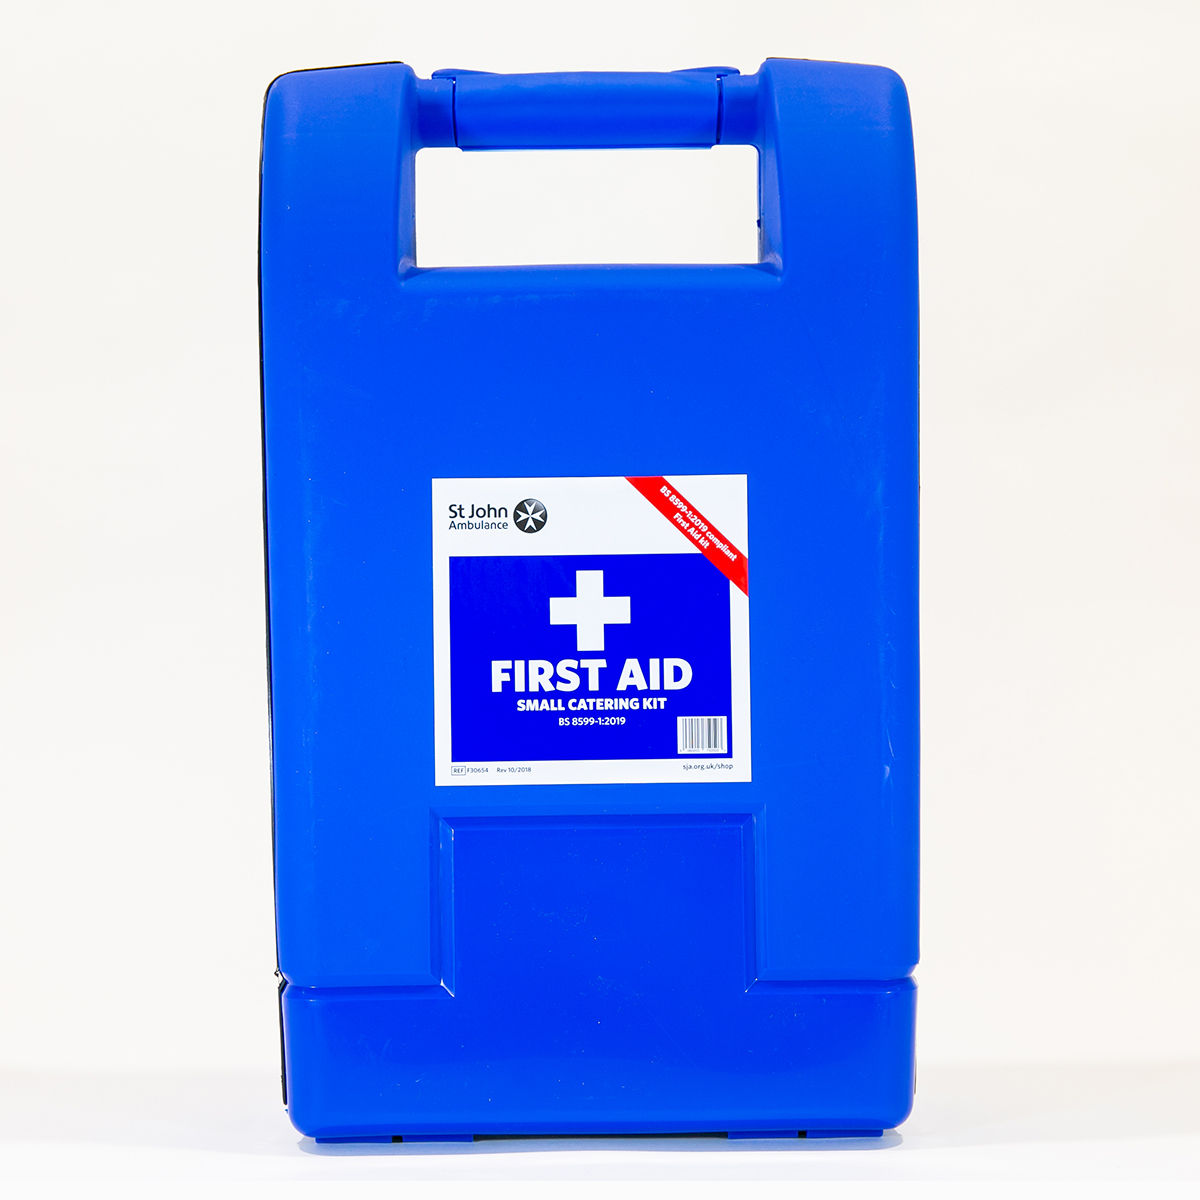 St John Ambulance Small Alpha Catering Workplace First Aid Kit BS 8599-1:2019